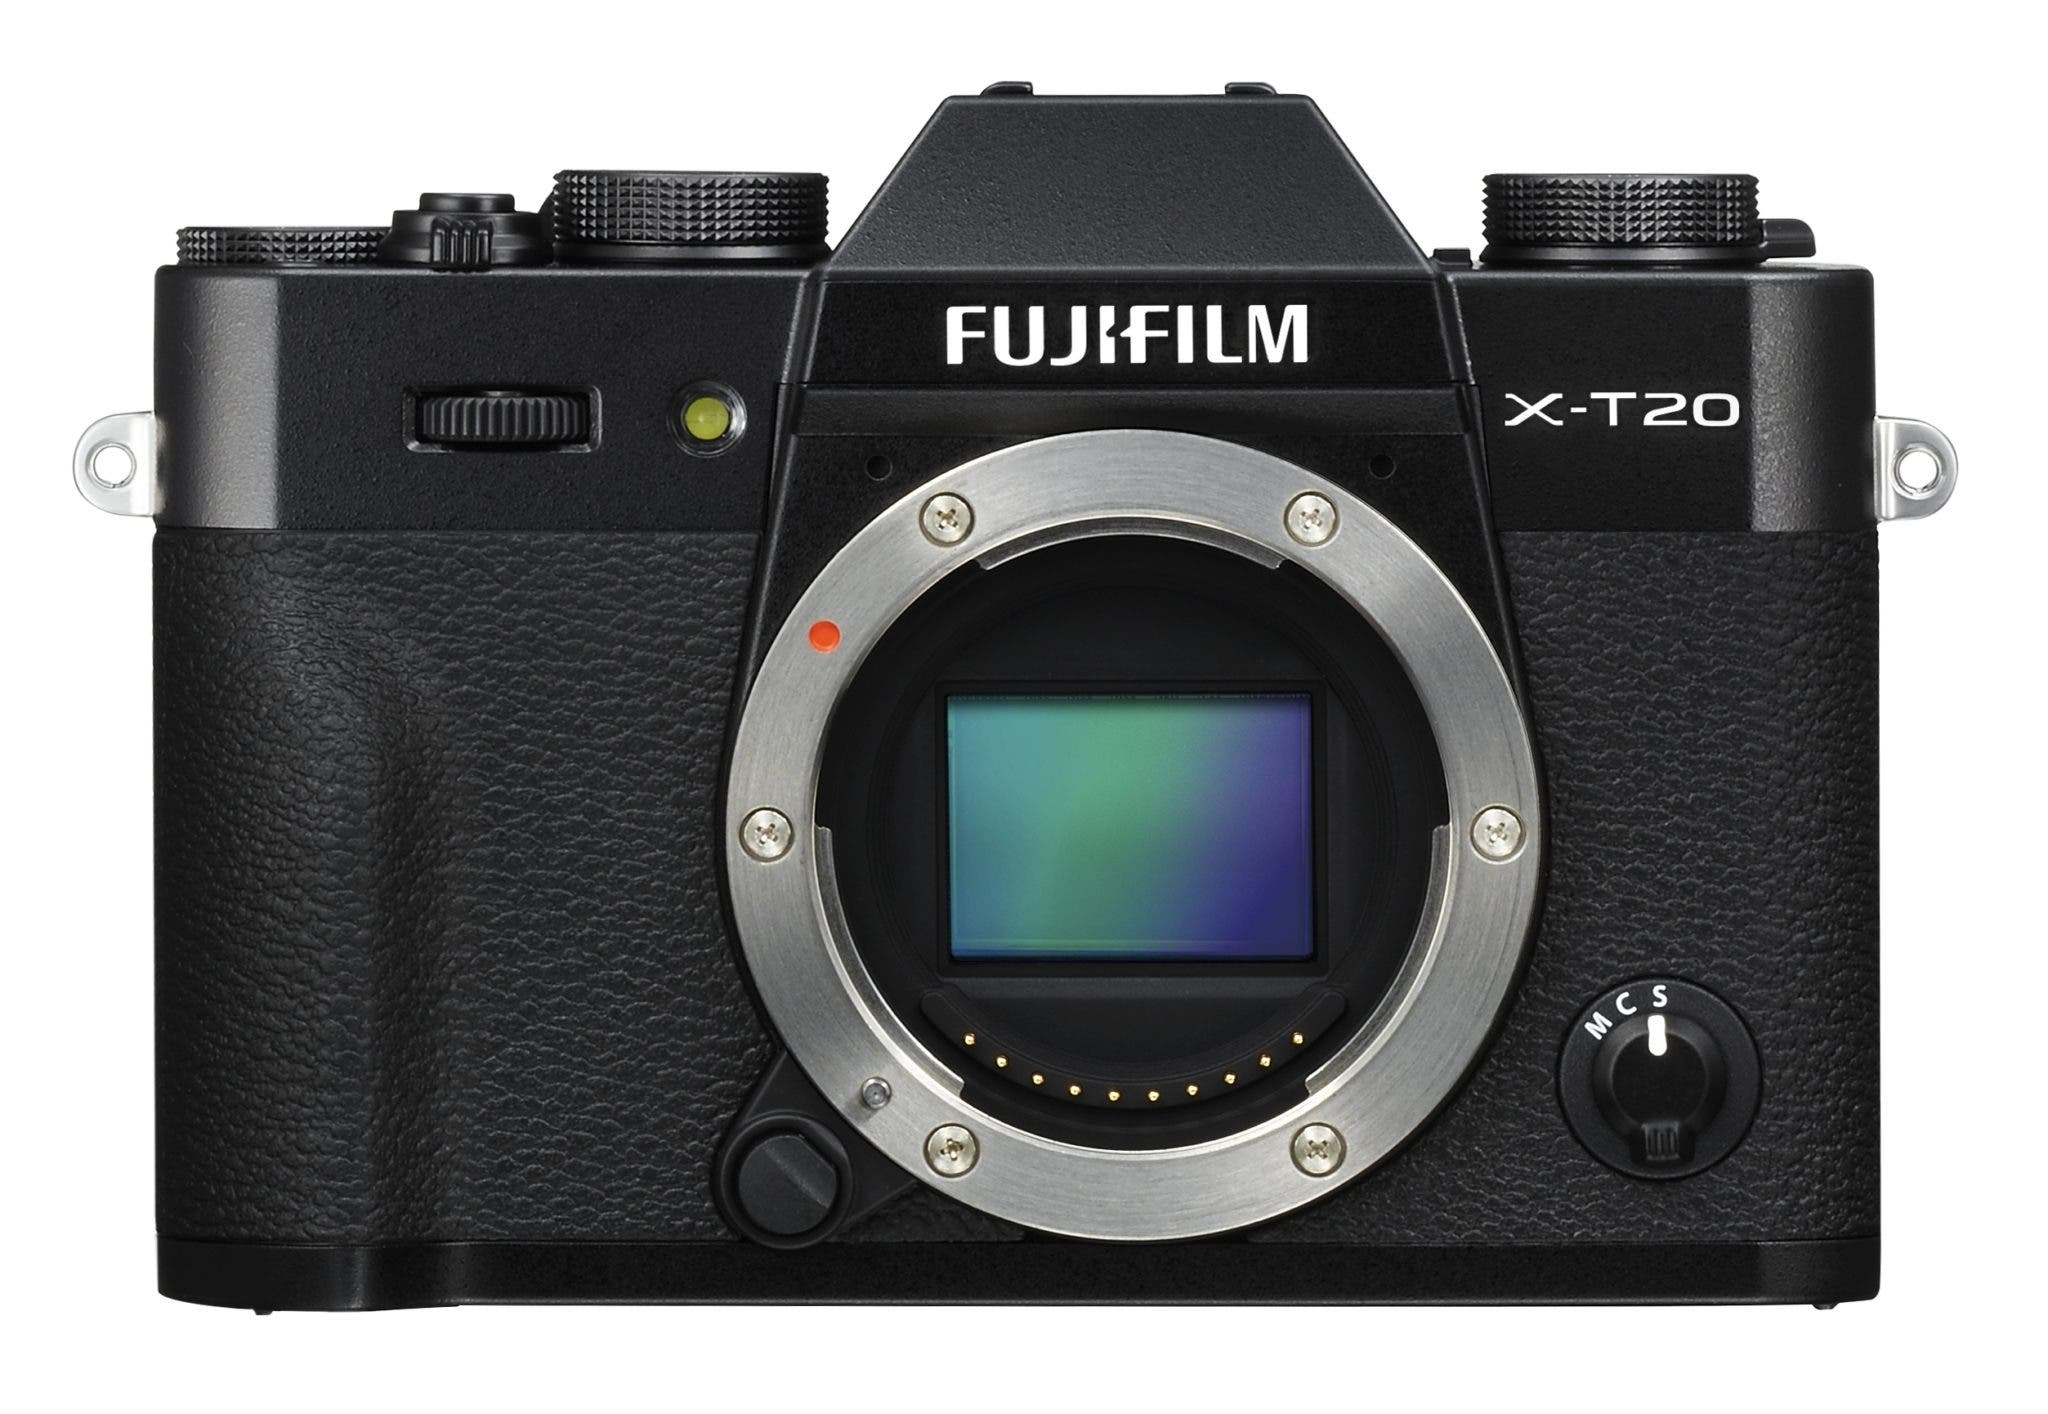 Fujifilm X-T20 and Fujifilm 50mm F2 Make Their Debut